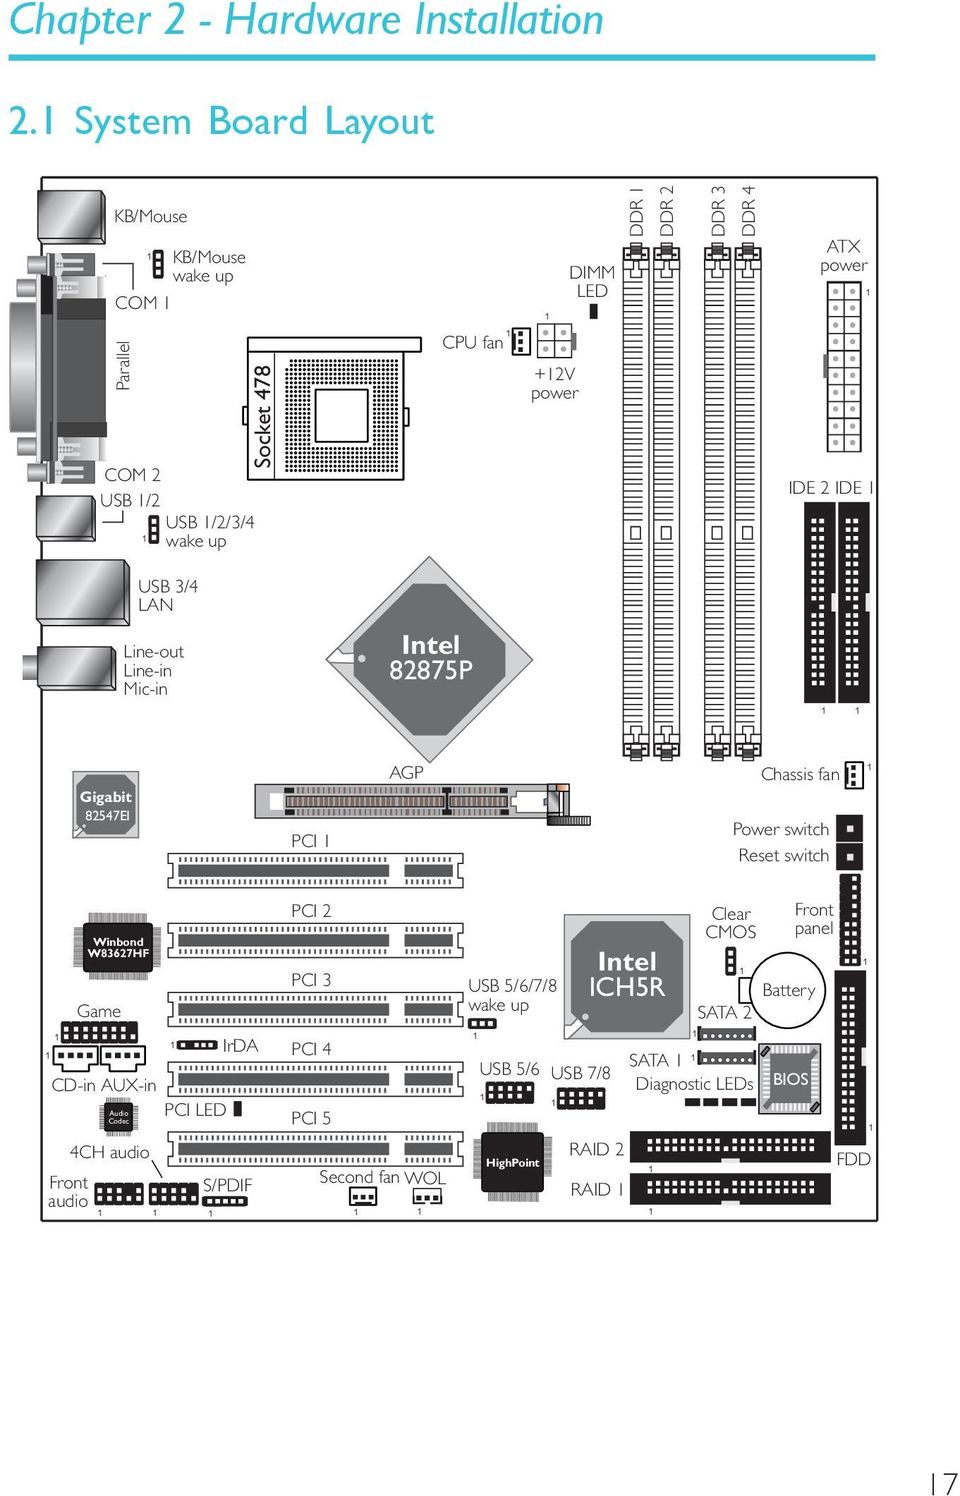 Rev A System Board User S Manual Pdf Magic Mobility X8 Wiring Diagram 2v Power Ide 2 Usb 3 4 Lan Line Out